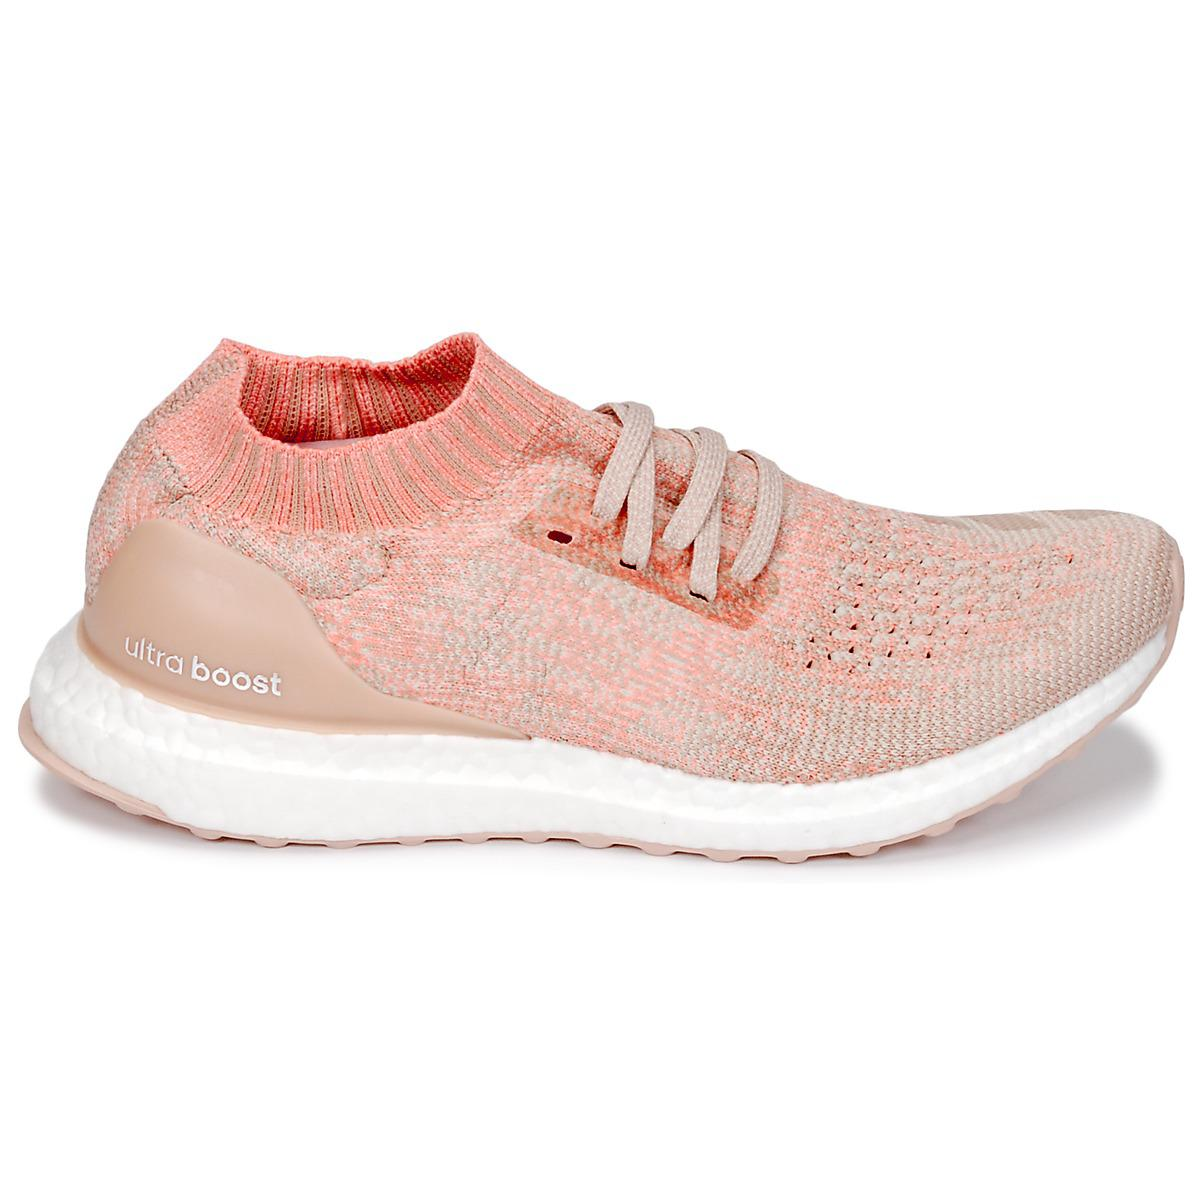 066c9b89bd811 ... italy adidas ultraboost uncaged womens running trainers in pink lyst.  view fullscreen a0c36 751d1